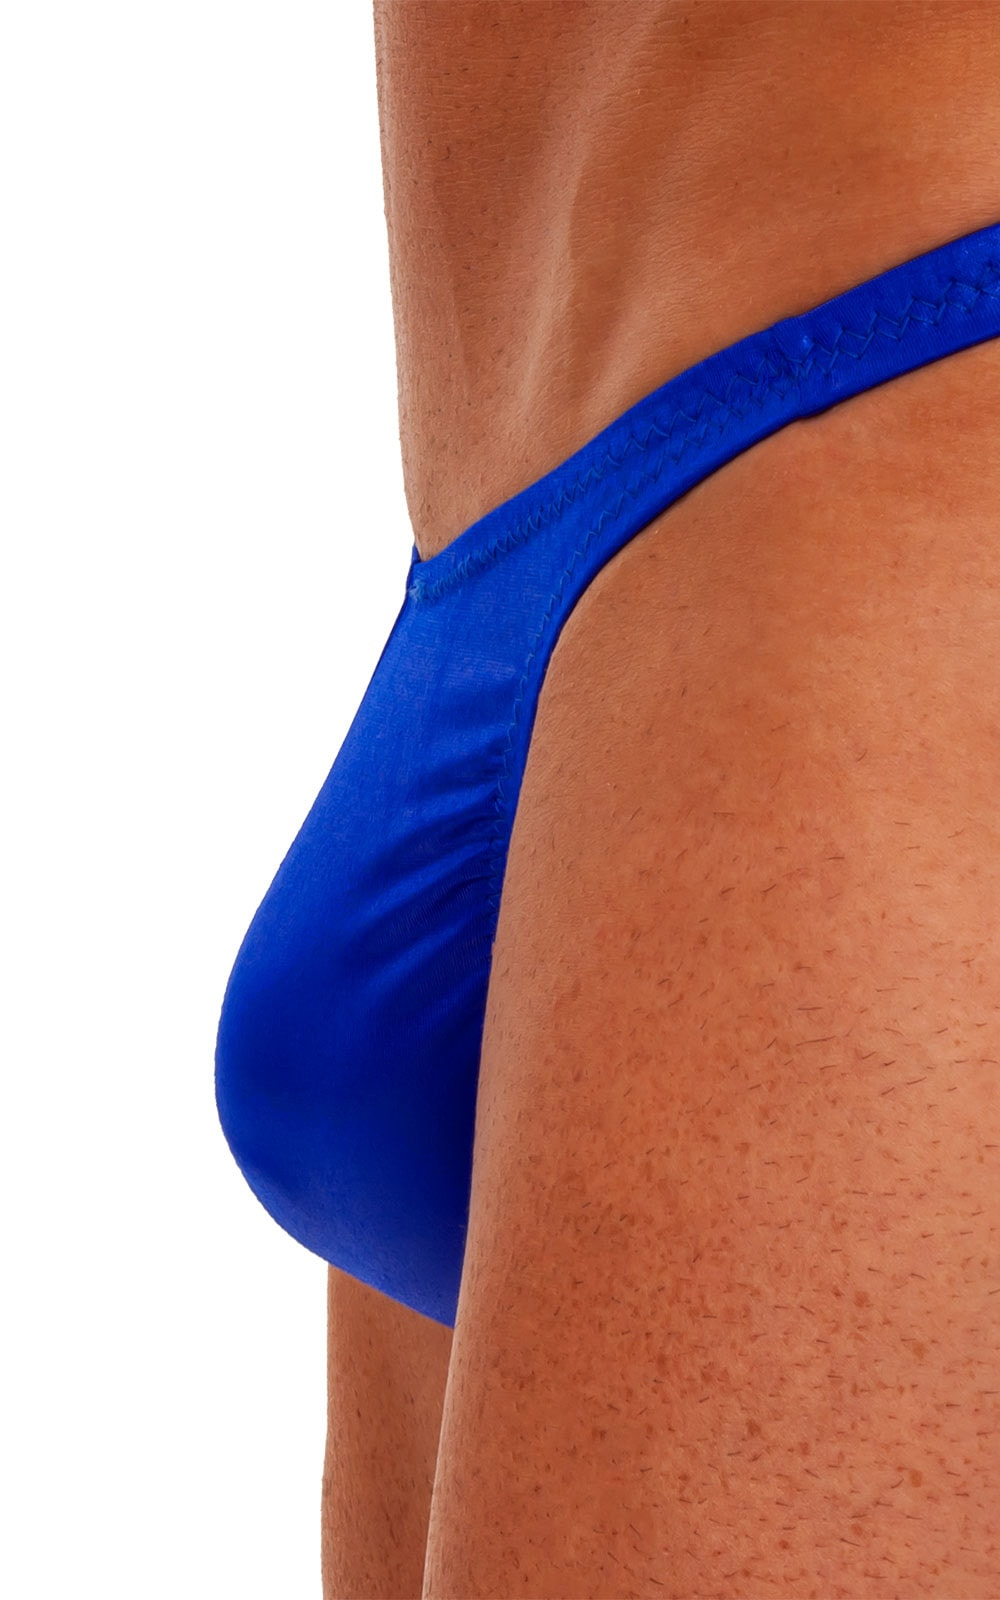 Swimsuit Thong in Wet Look Royal Blue 4